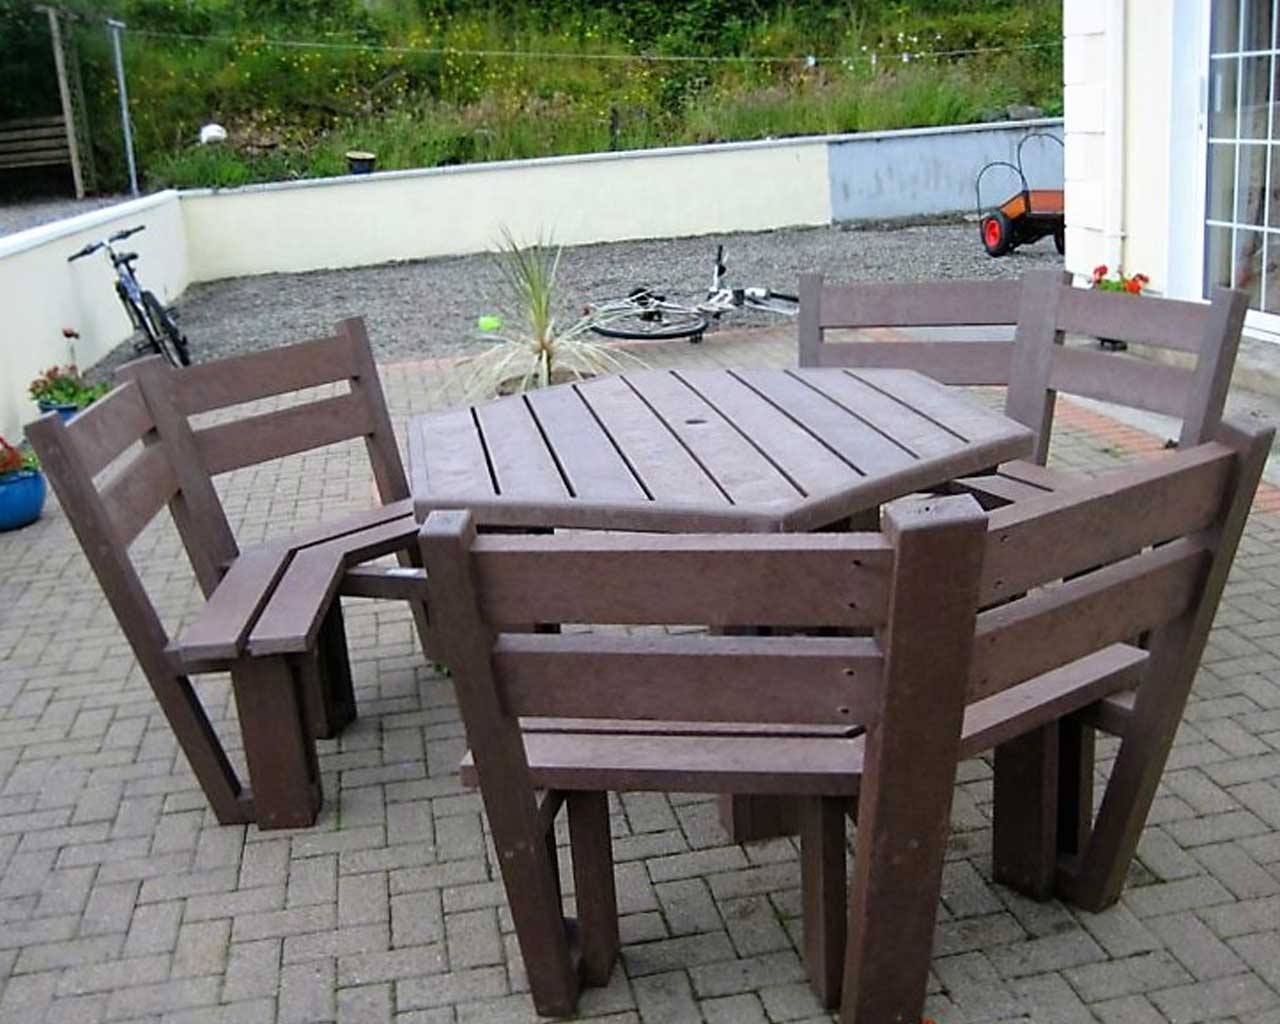 Sidedpicnictablewithback Murrays Recycled Plastic - 6 sided picnic table